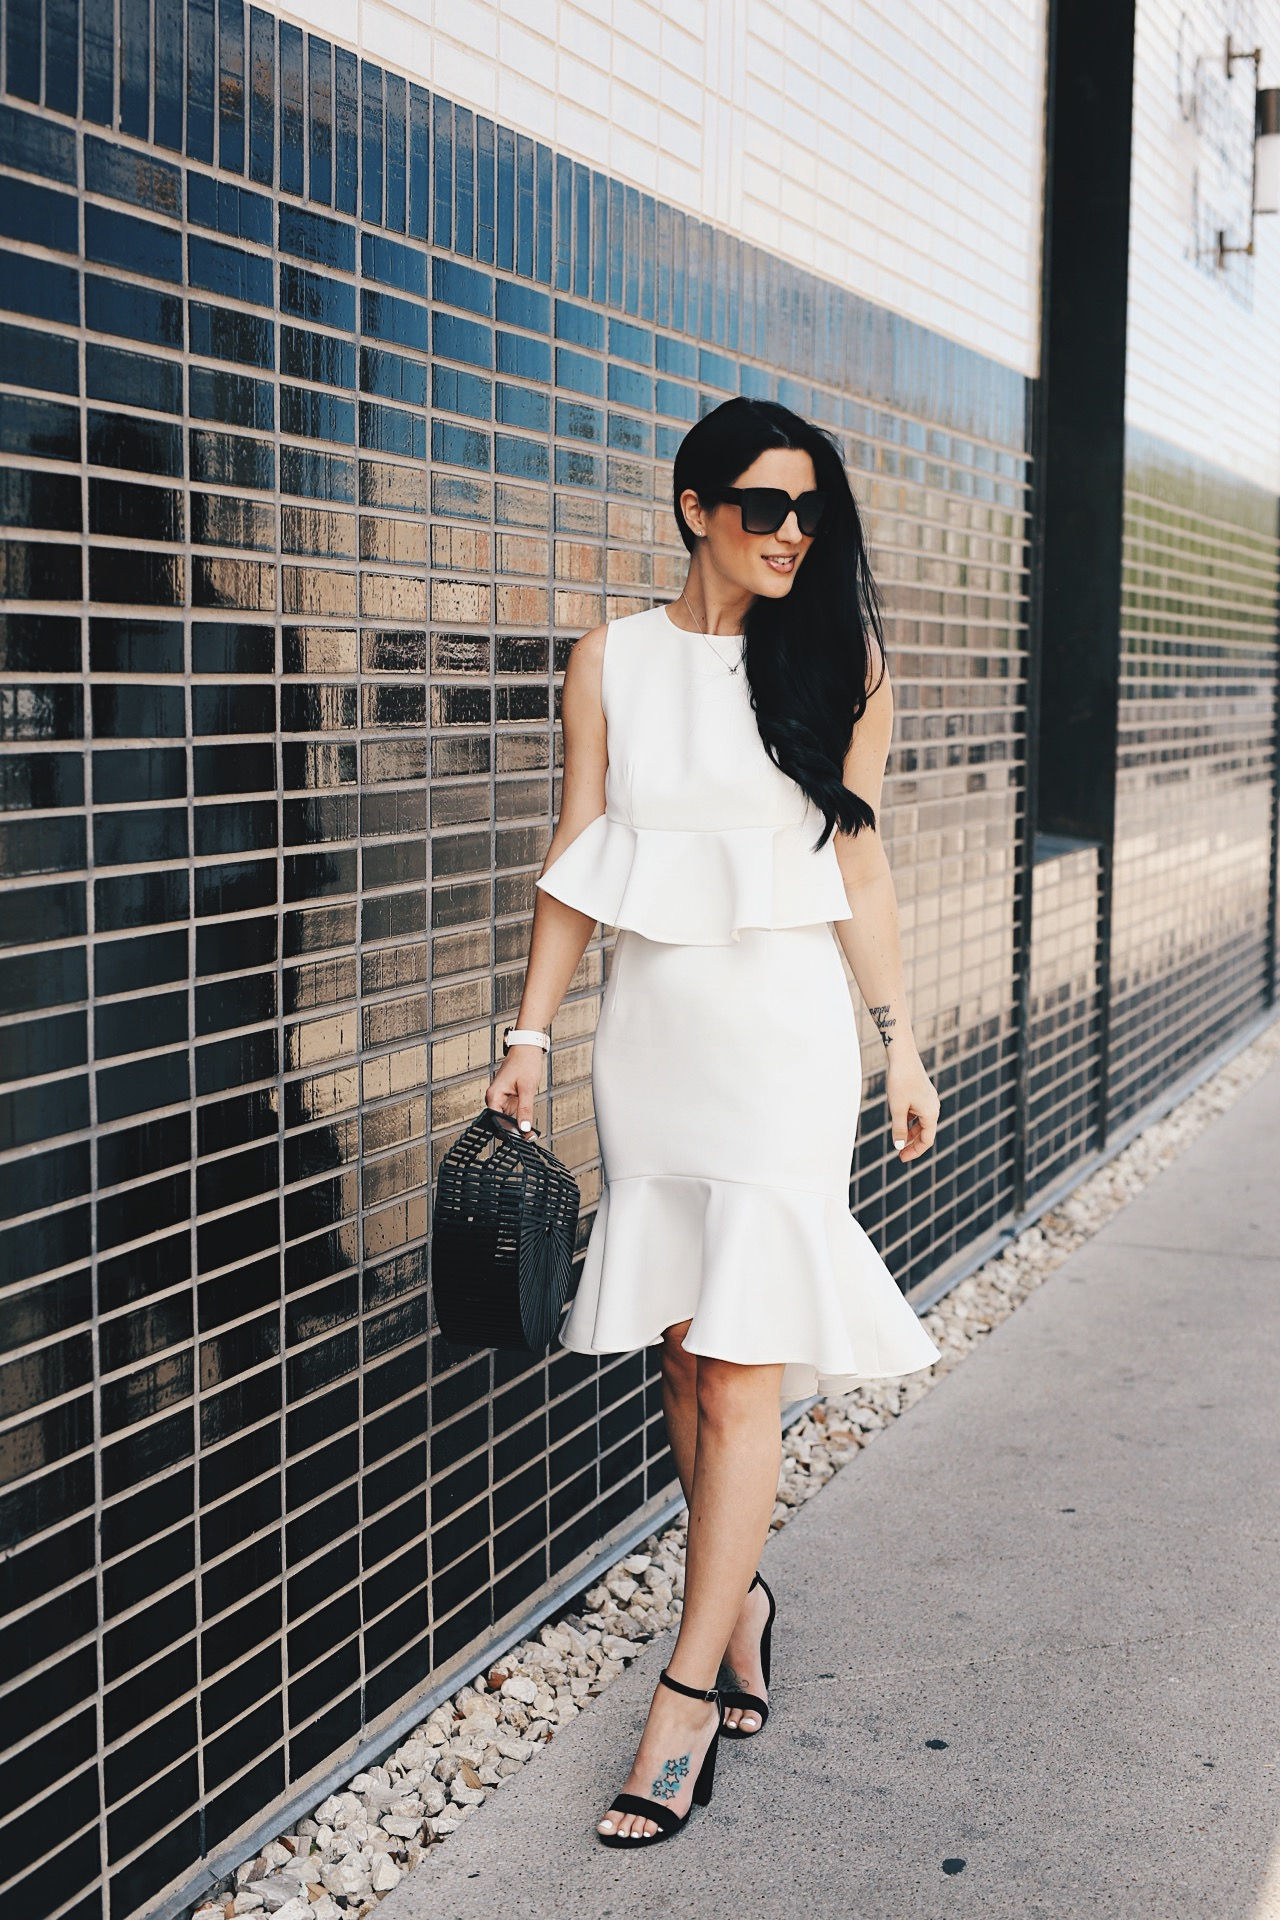 DTKAustin shares a versatile white top and skirt set from Chicwish. Perfect for Spring/Summer and the upcoming Kentucky Derby. Black Bamboo bag from Red Dress Boutique or Cult Gaia. || Dressed to Kill #fashion #style #springstyle - White Two Piece Set styled by popular Austin fashion blogger, Dressed to Kill